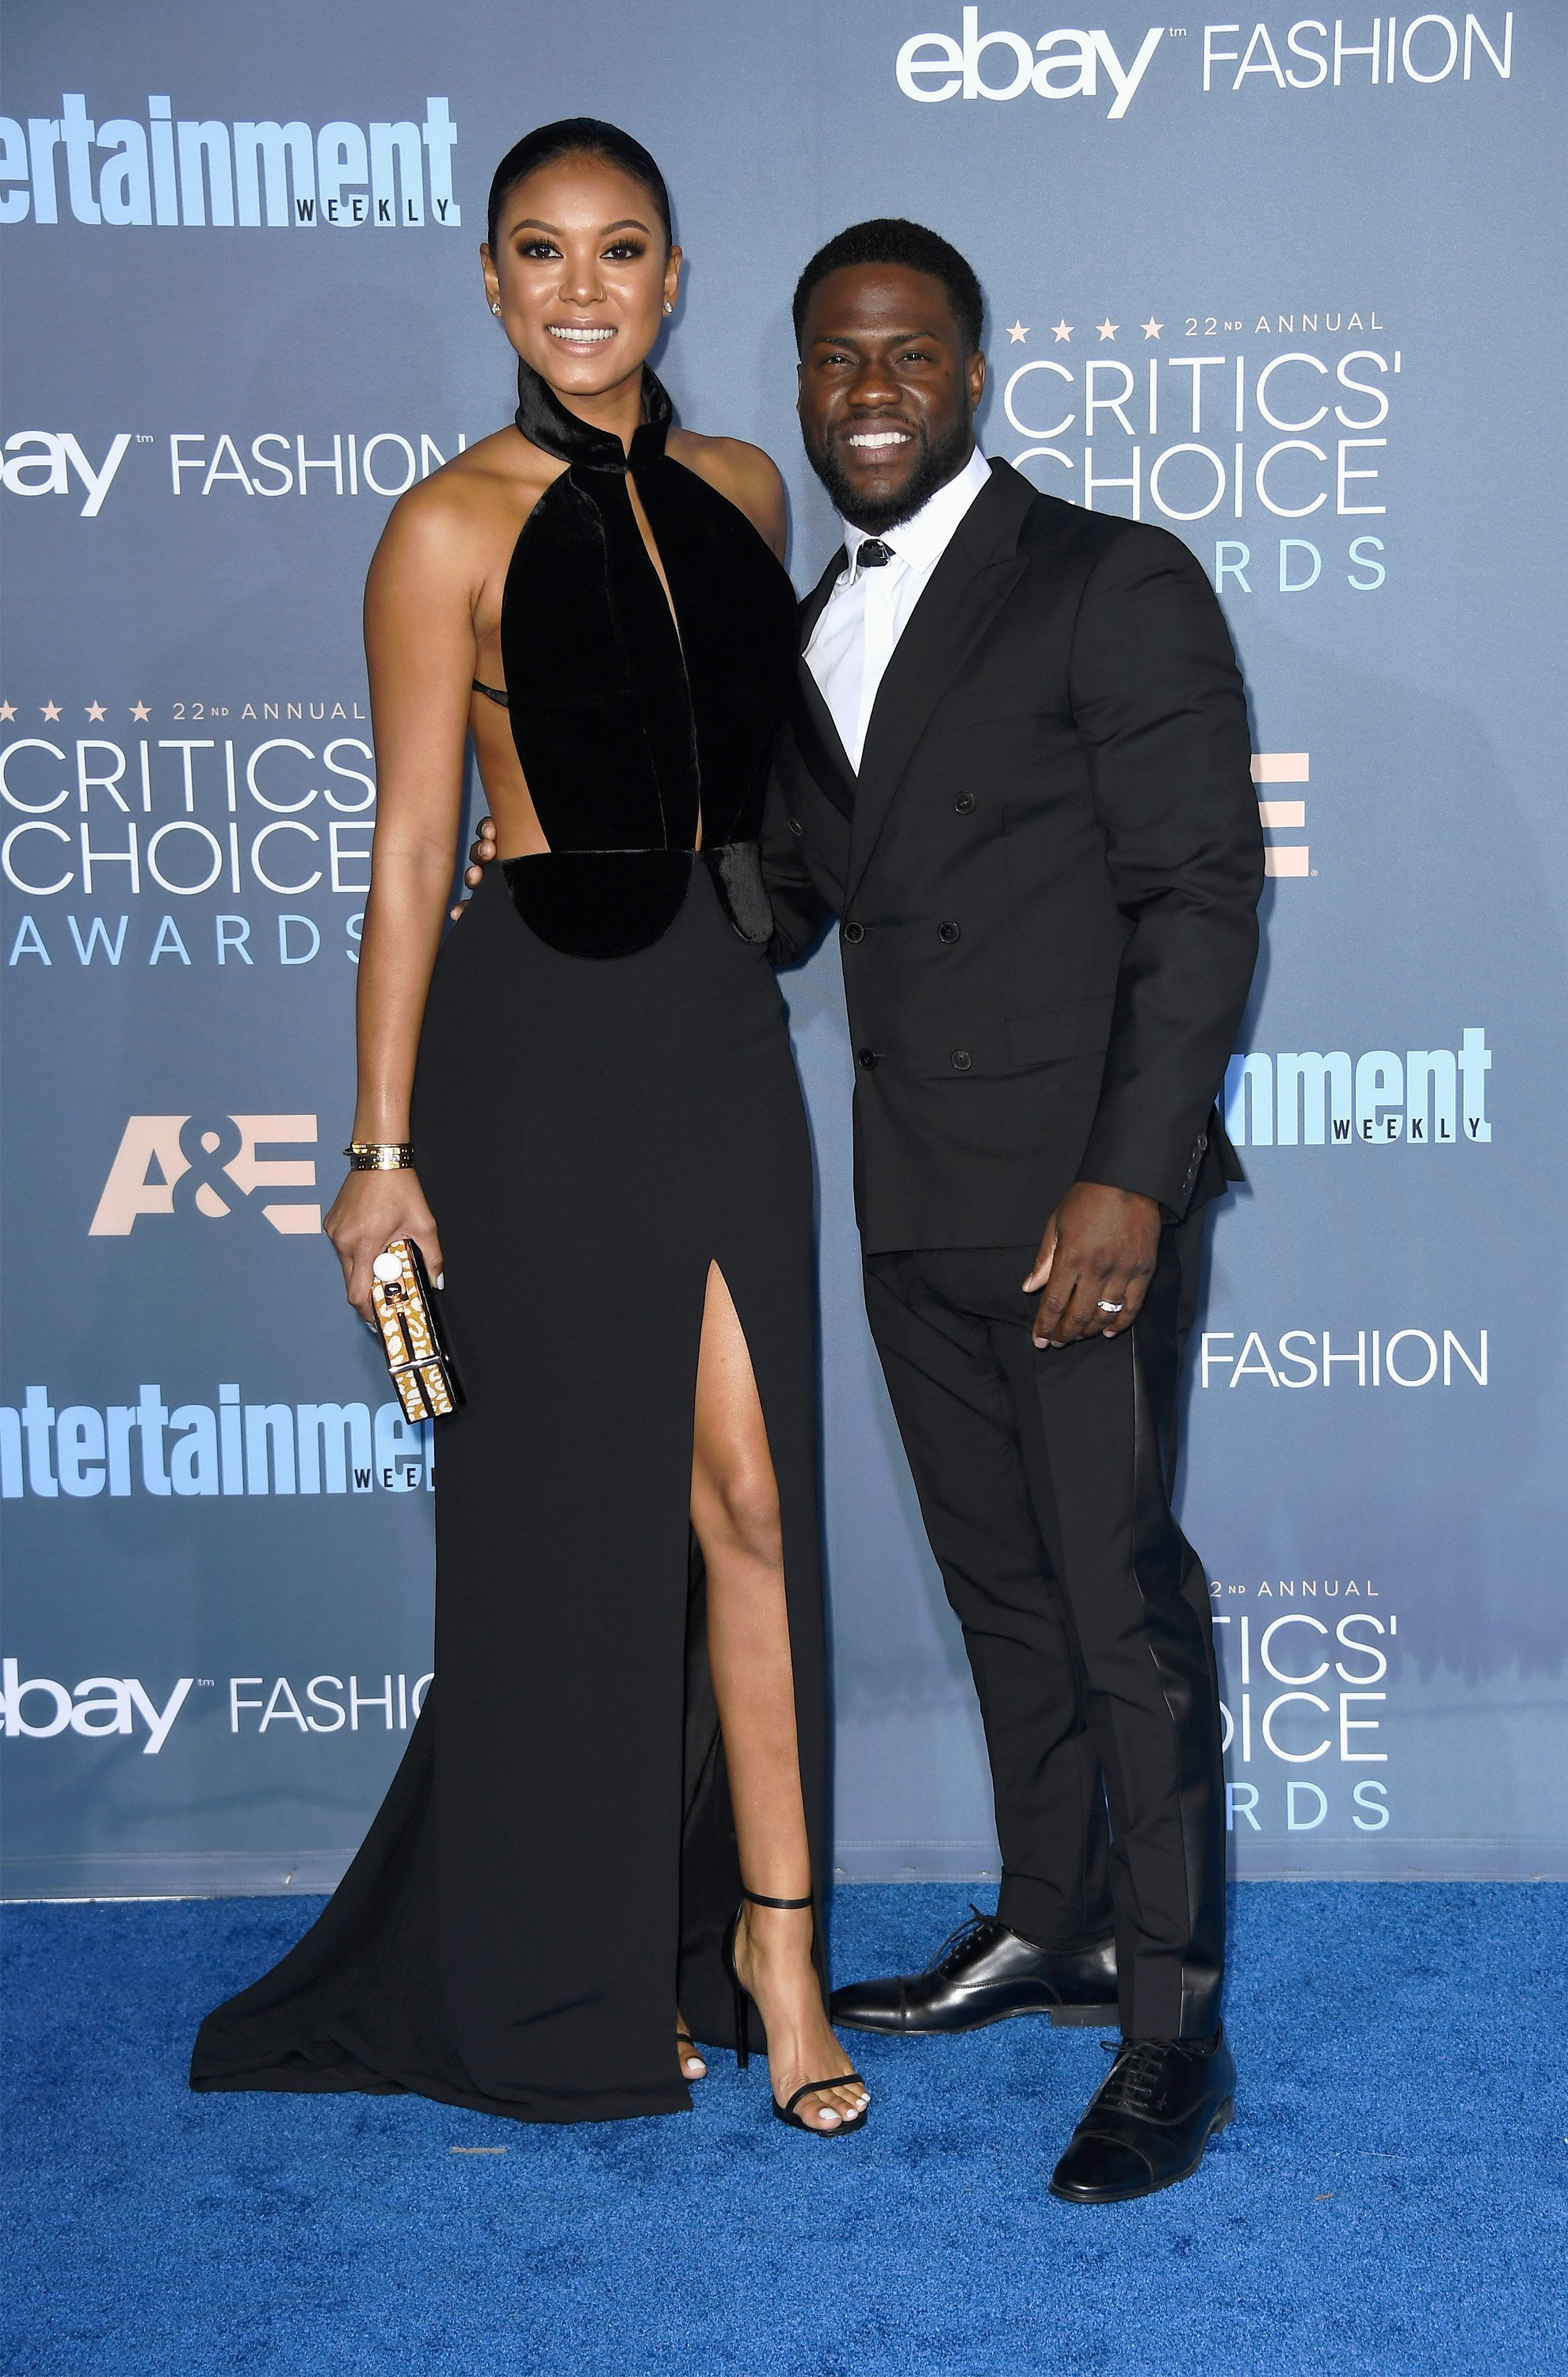 Kevin hart double dating meaning